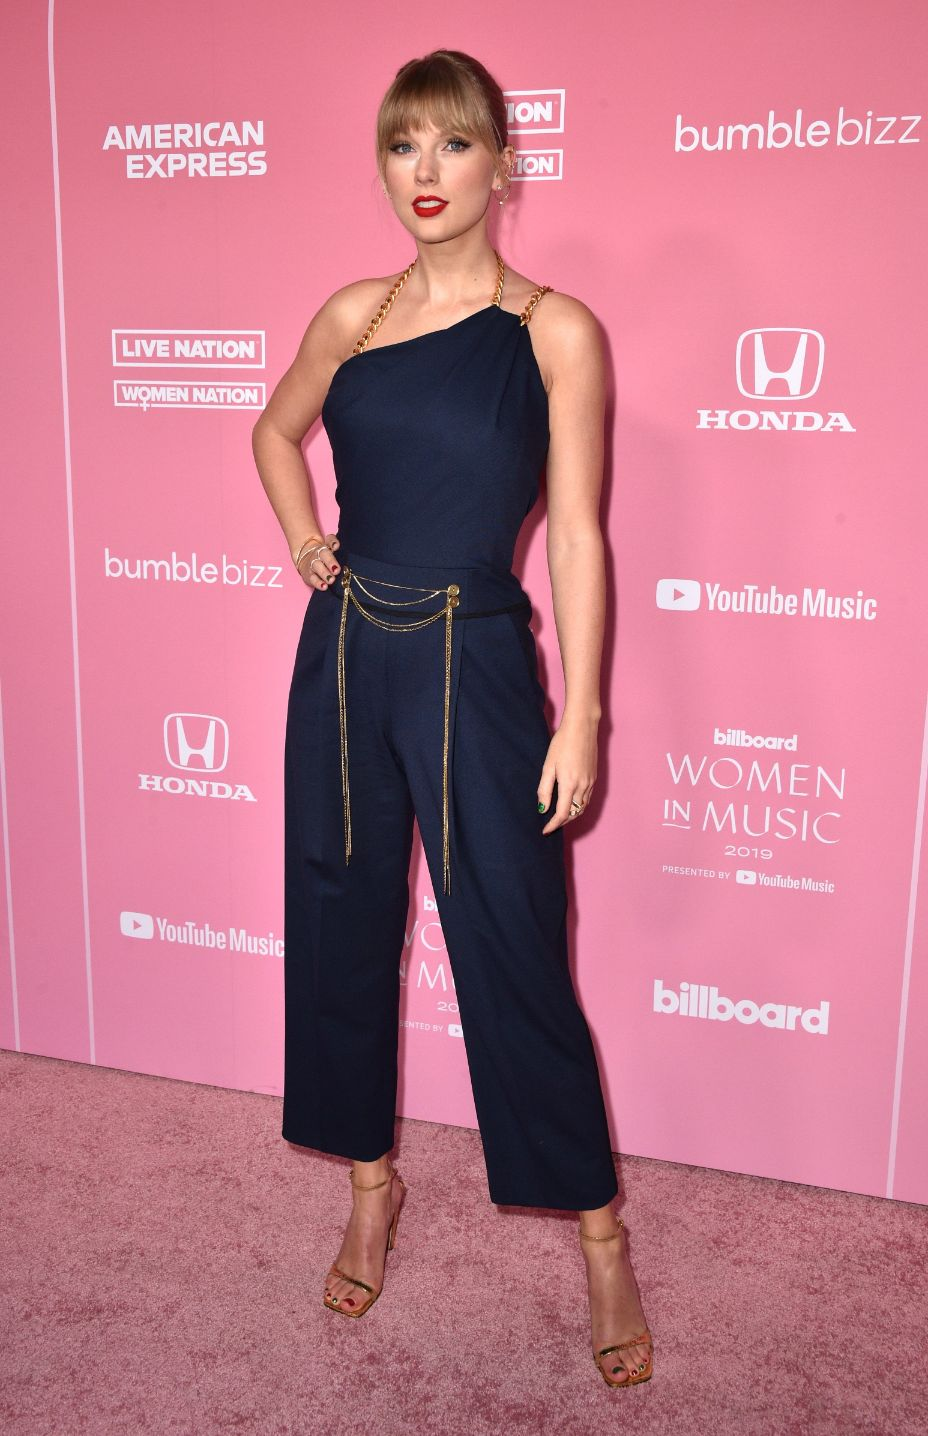 2019 Billboard Women in Music, taylor swift, jumpsuit, gold heels